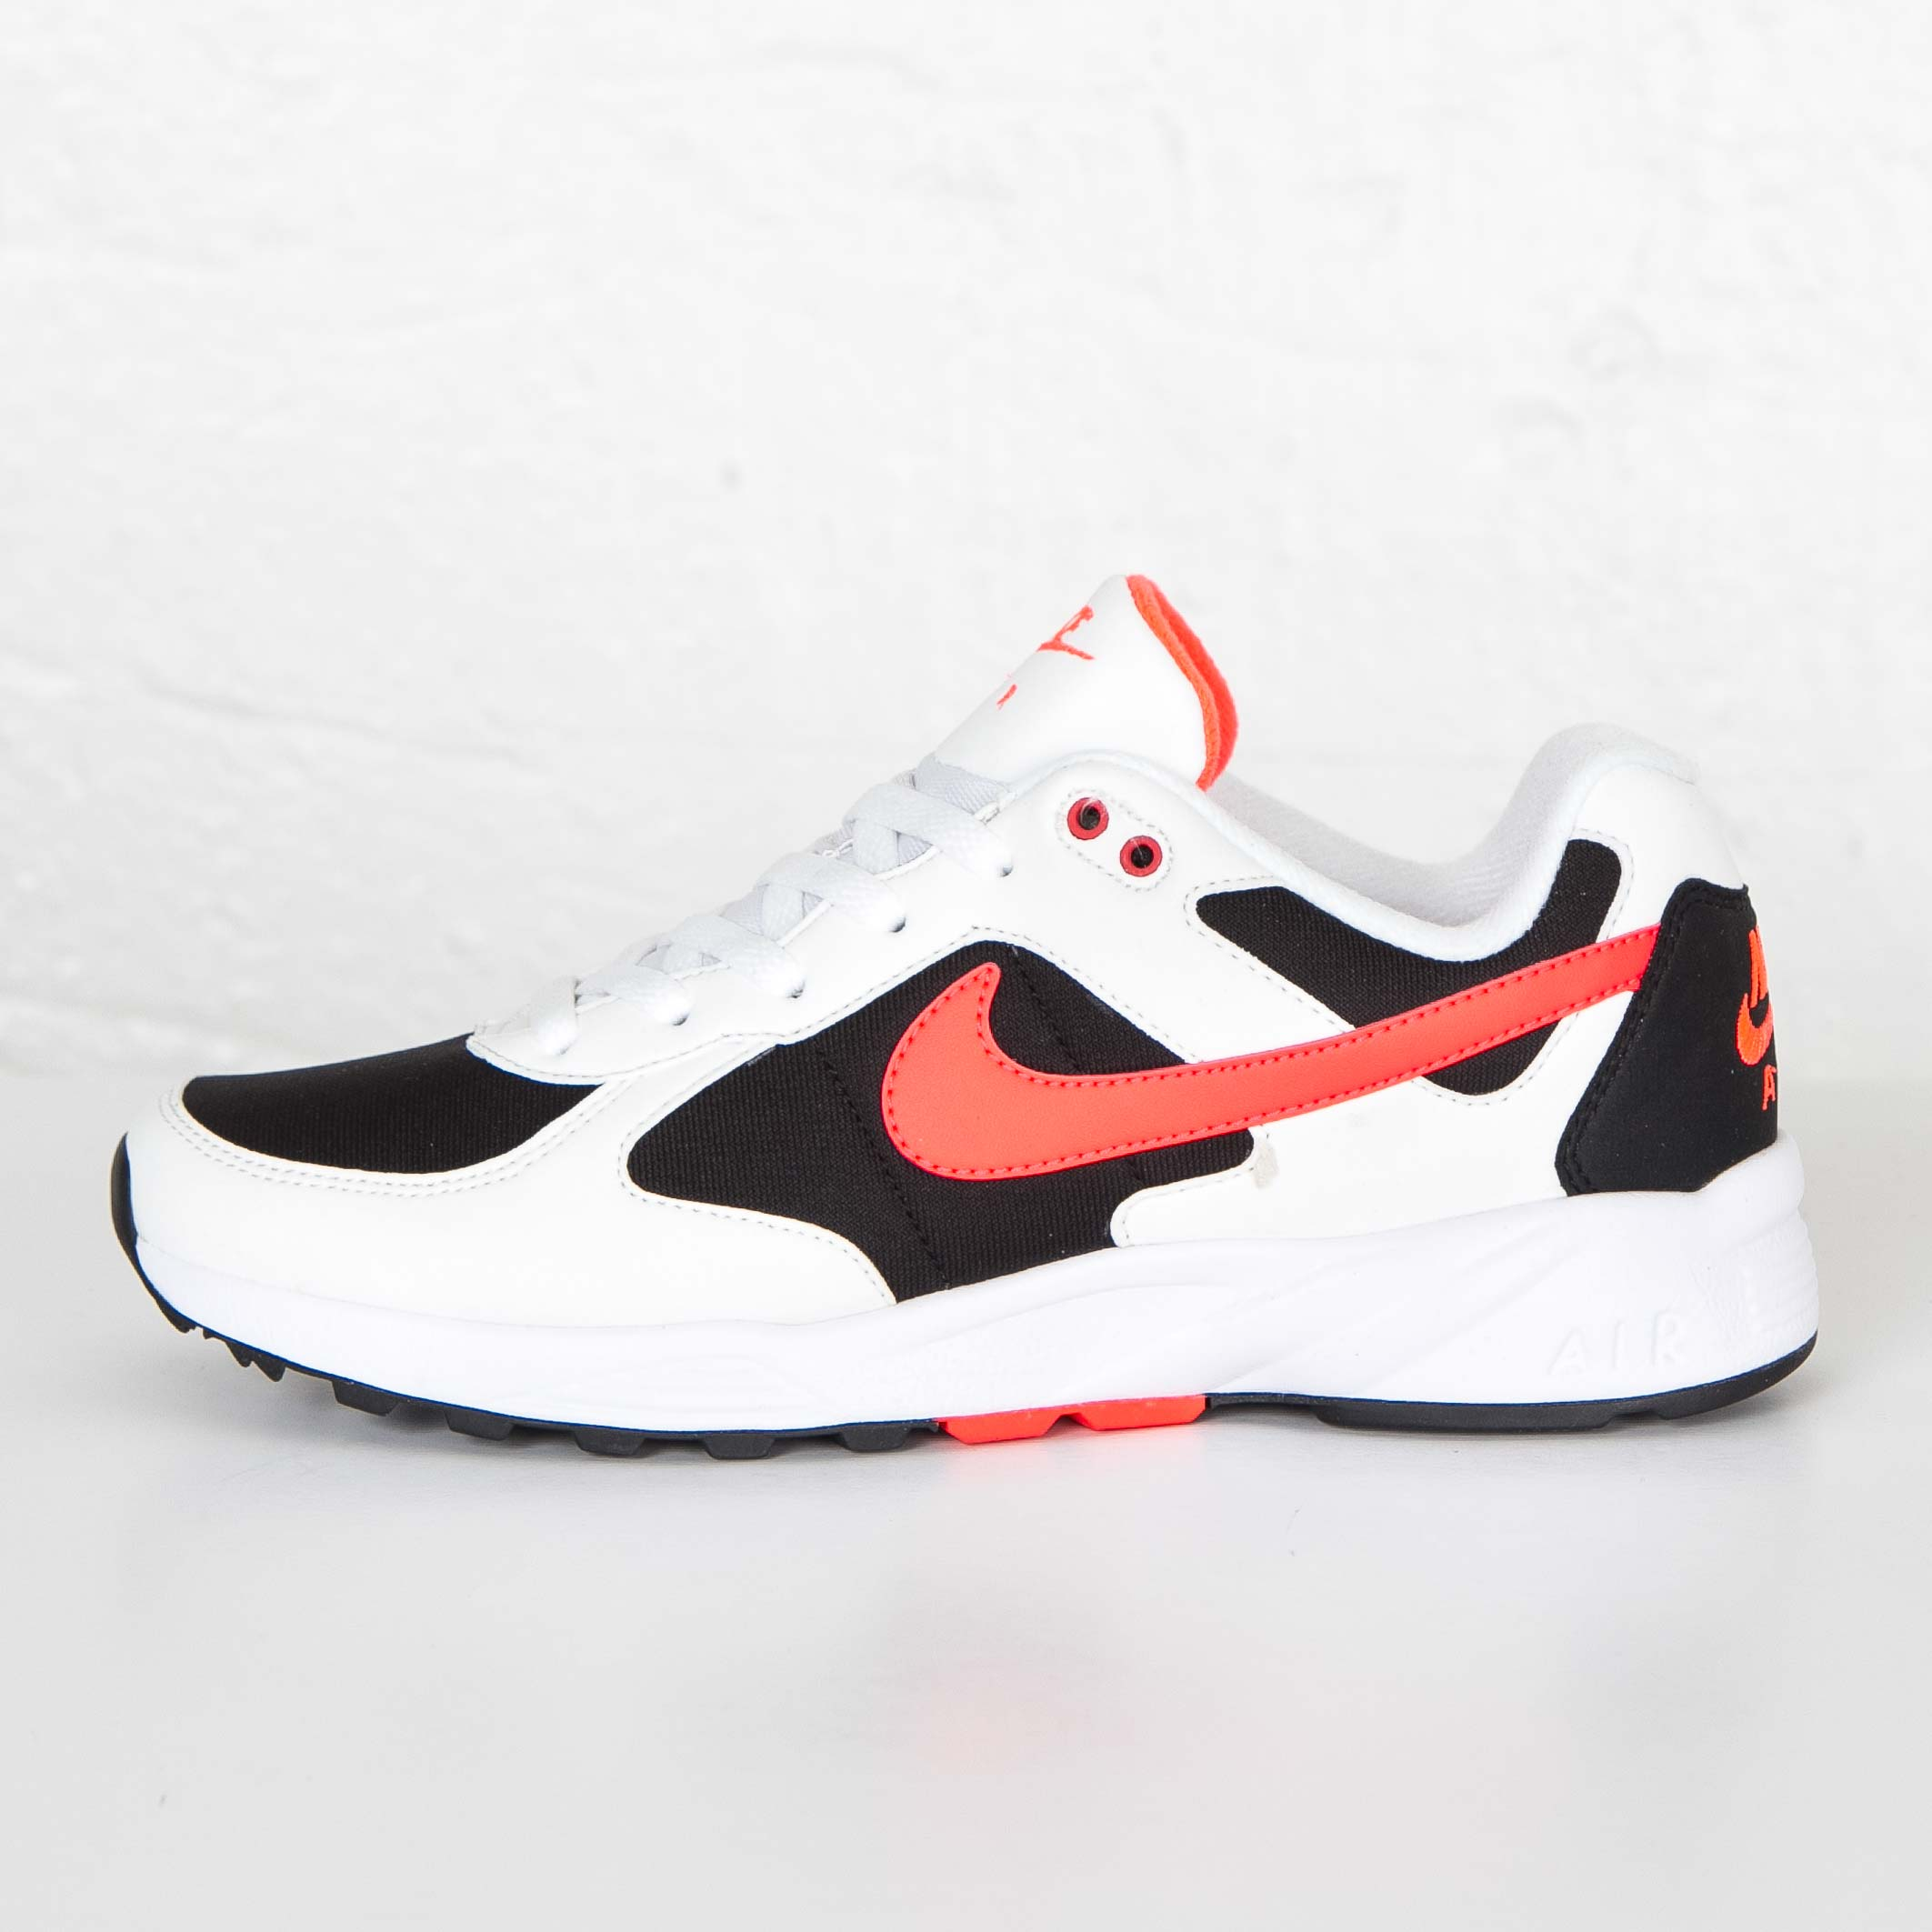 new arrival 3cd4a db208 ... Nike Air Icarus NSW ...